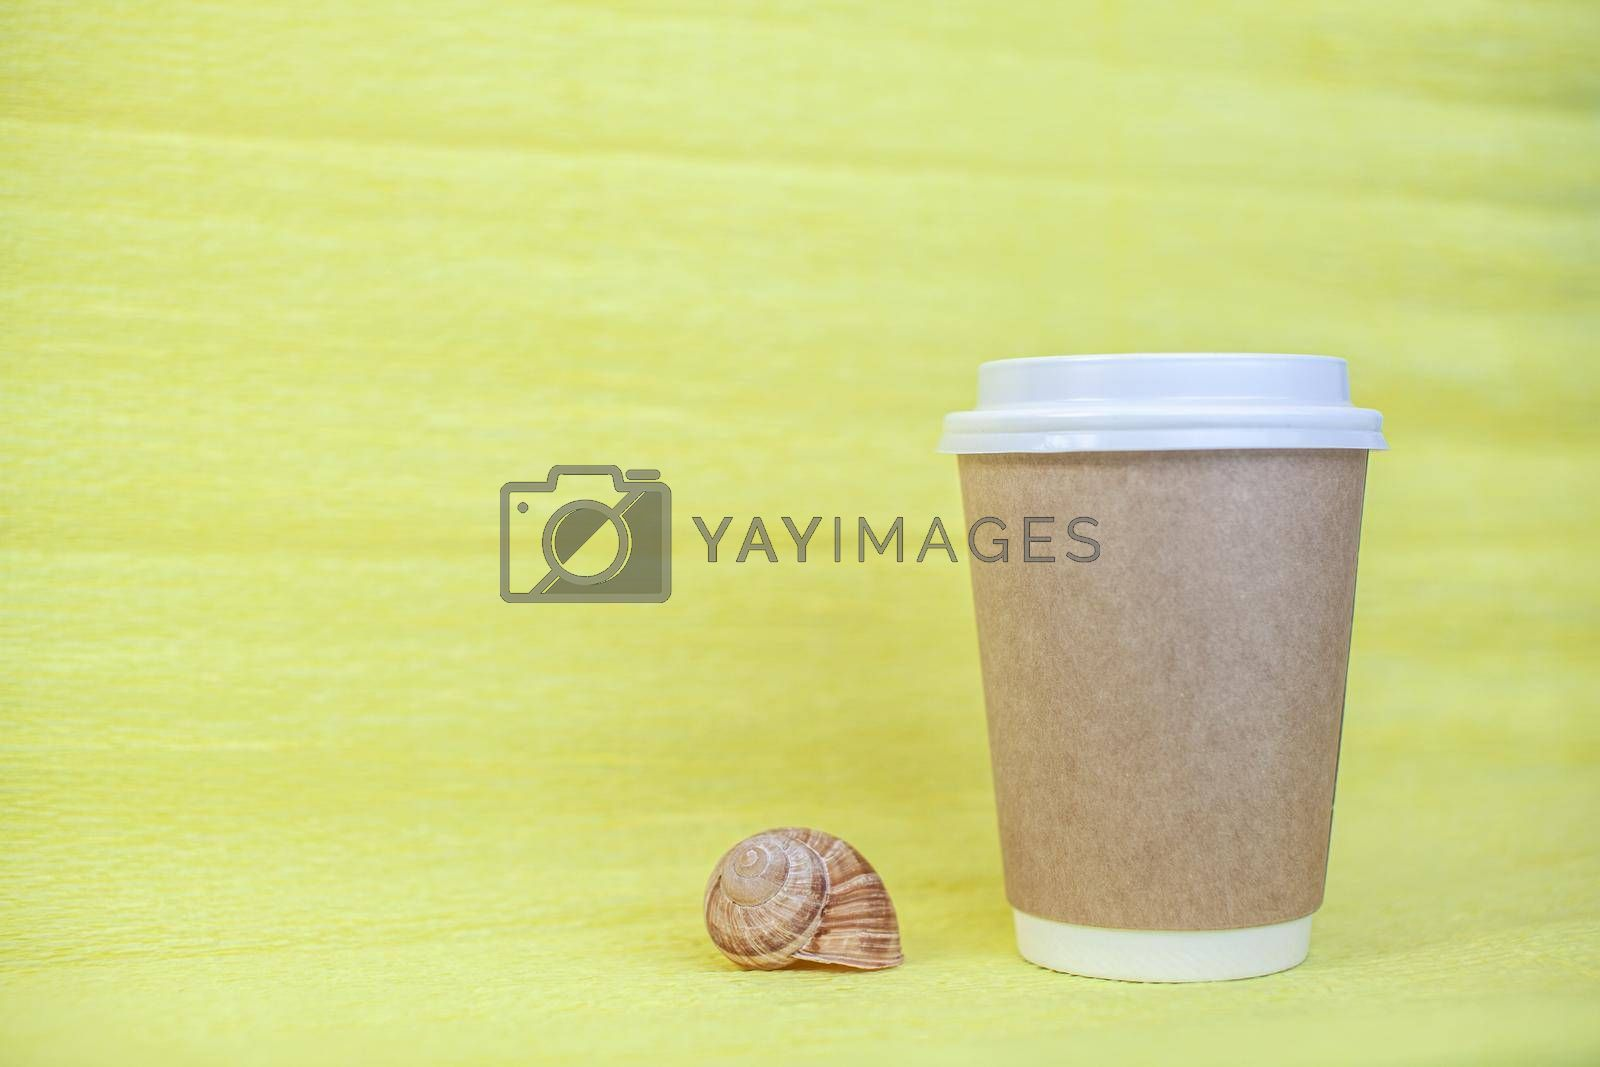 Royalty free image of paper cup of coffee covered with a white lid and next to it sea shells by AnatoliiFoto